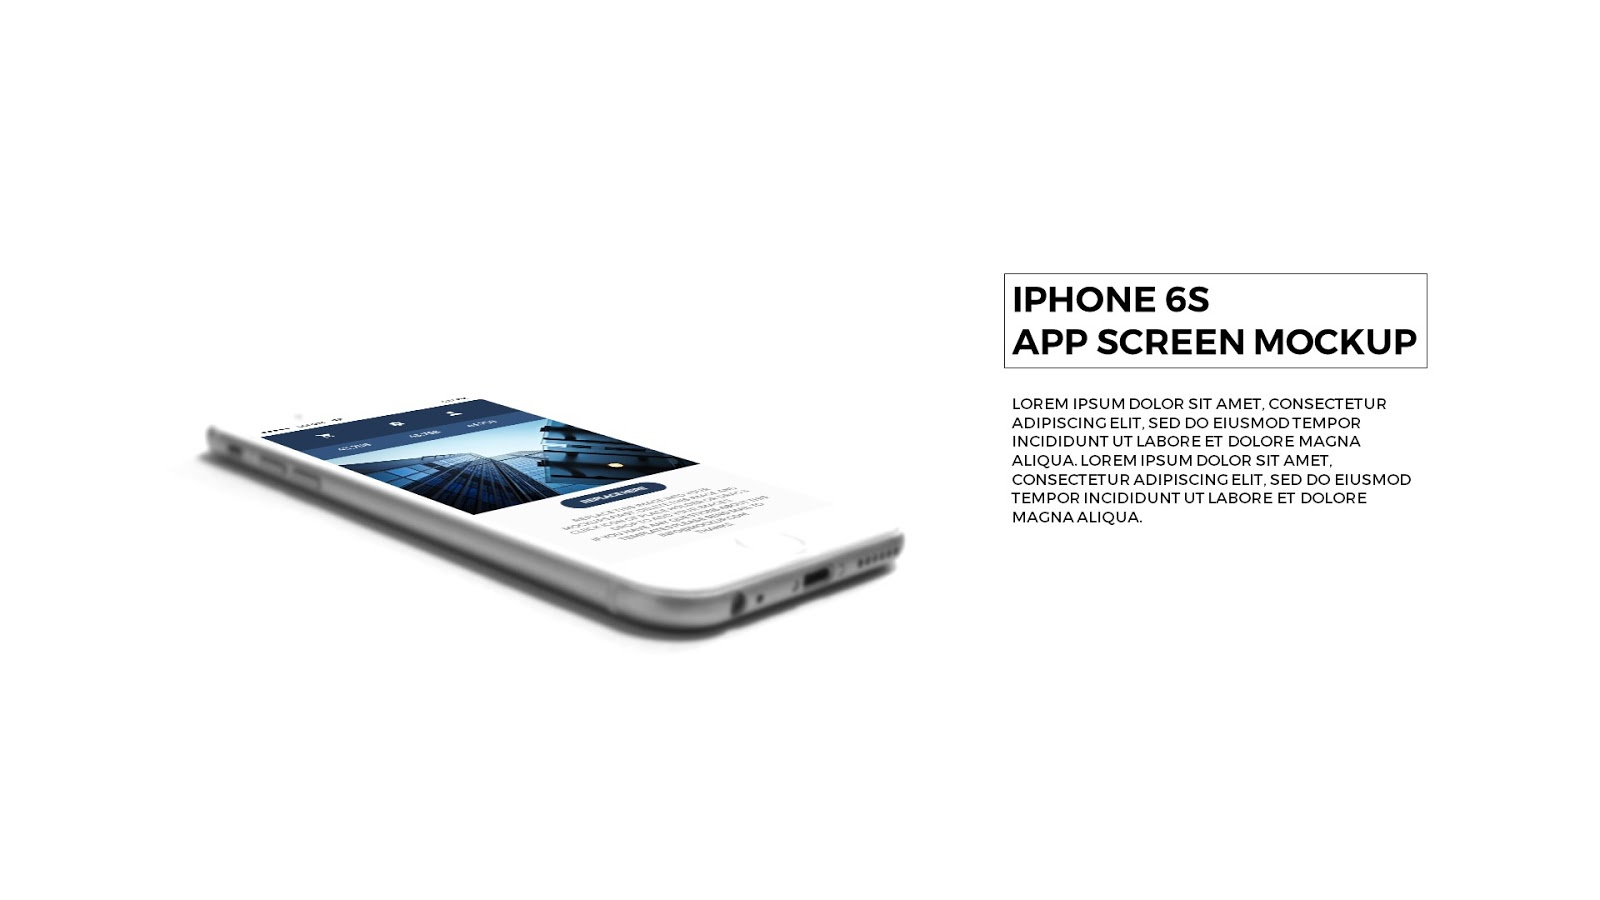 Photo Realistic Iphone 6s Mockup In Powerpoint